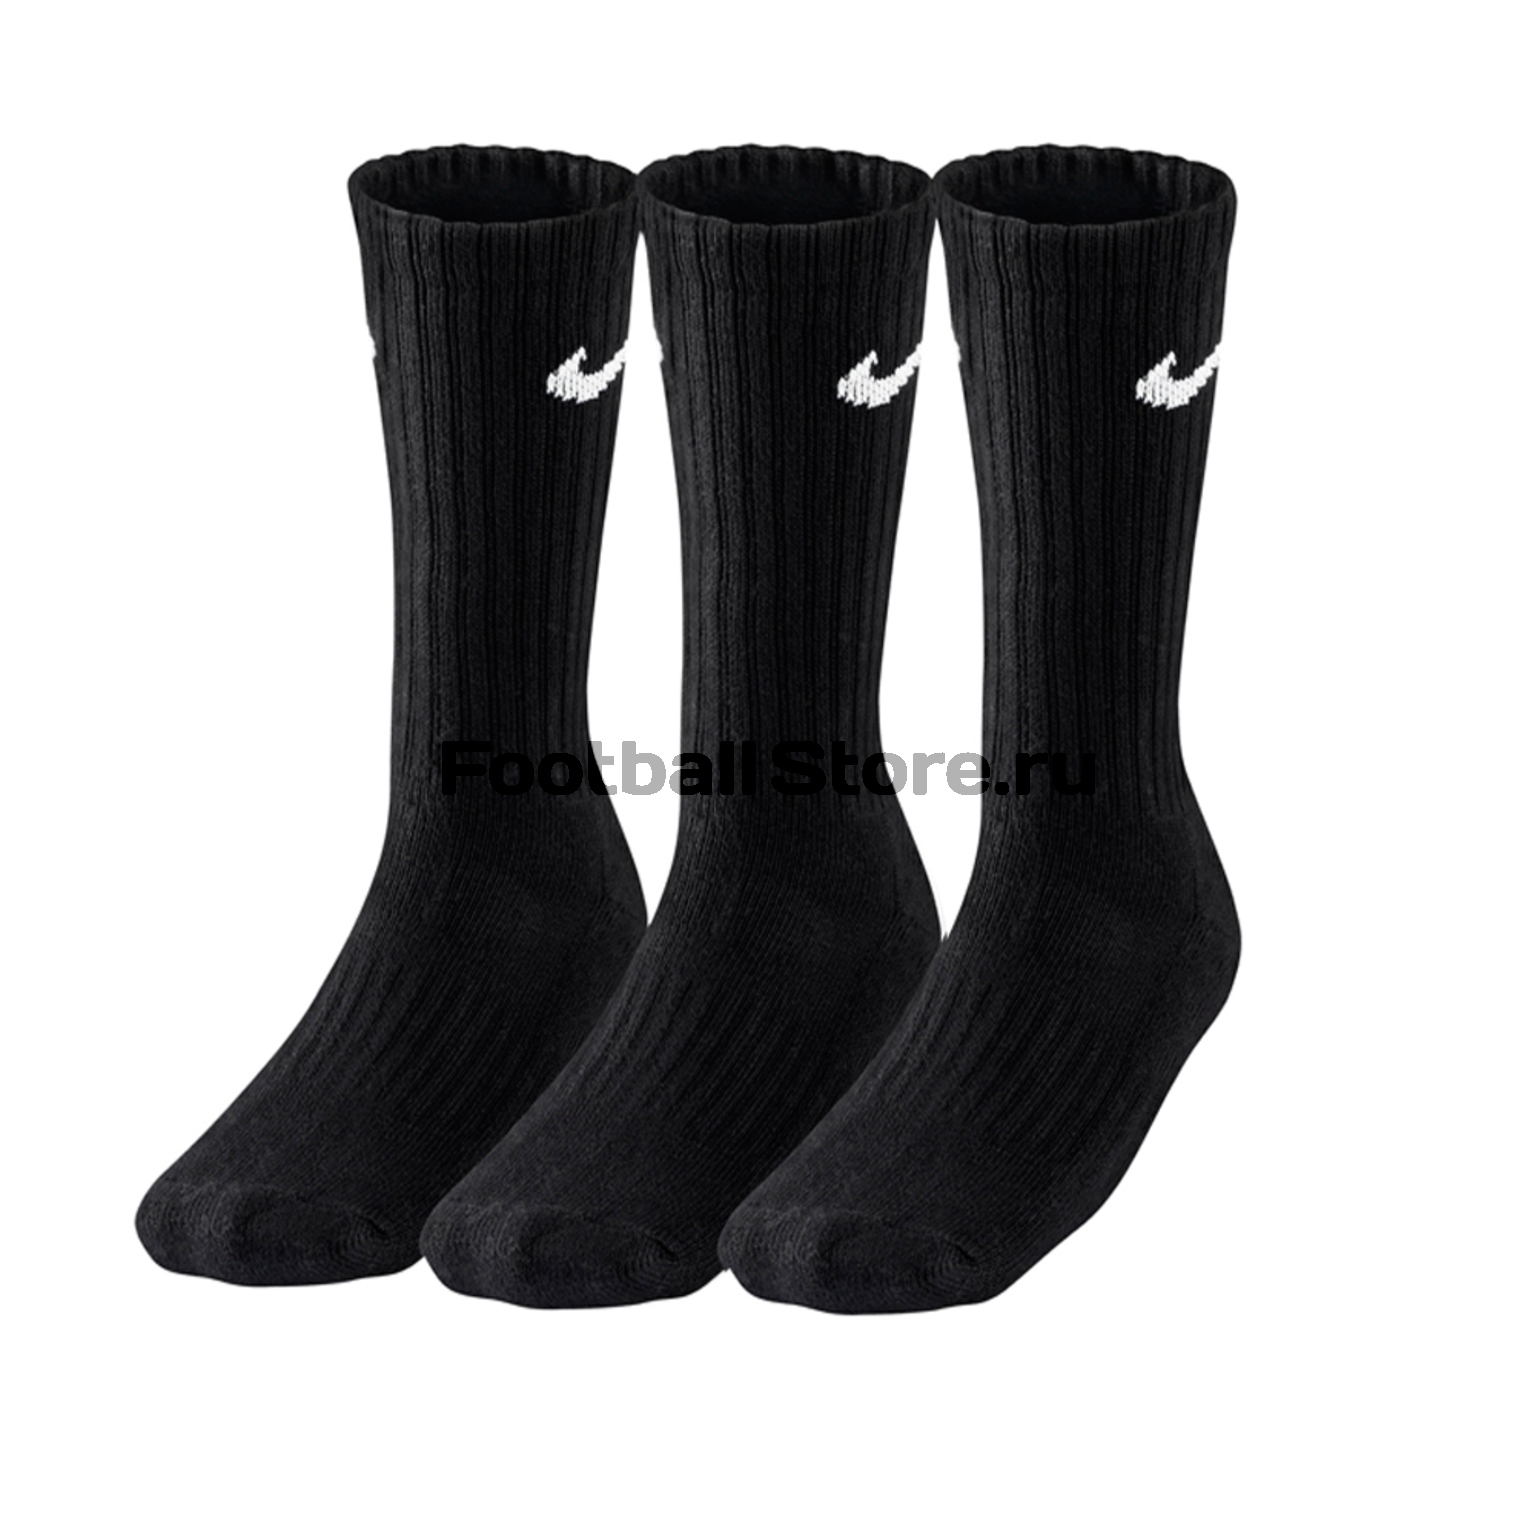 Комплект носков Nike 3ppk Value Cotton Crew SX4508-001 комплект носков nike 3ppk cushion quarter sx4703 901